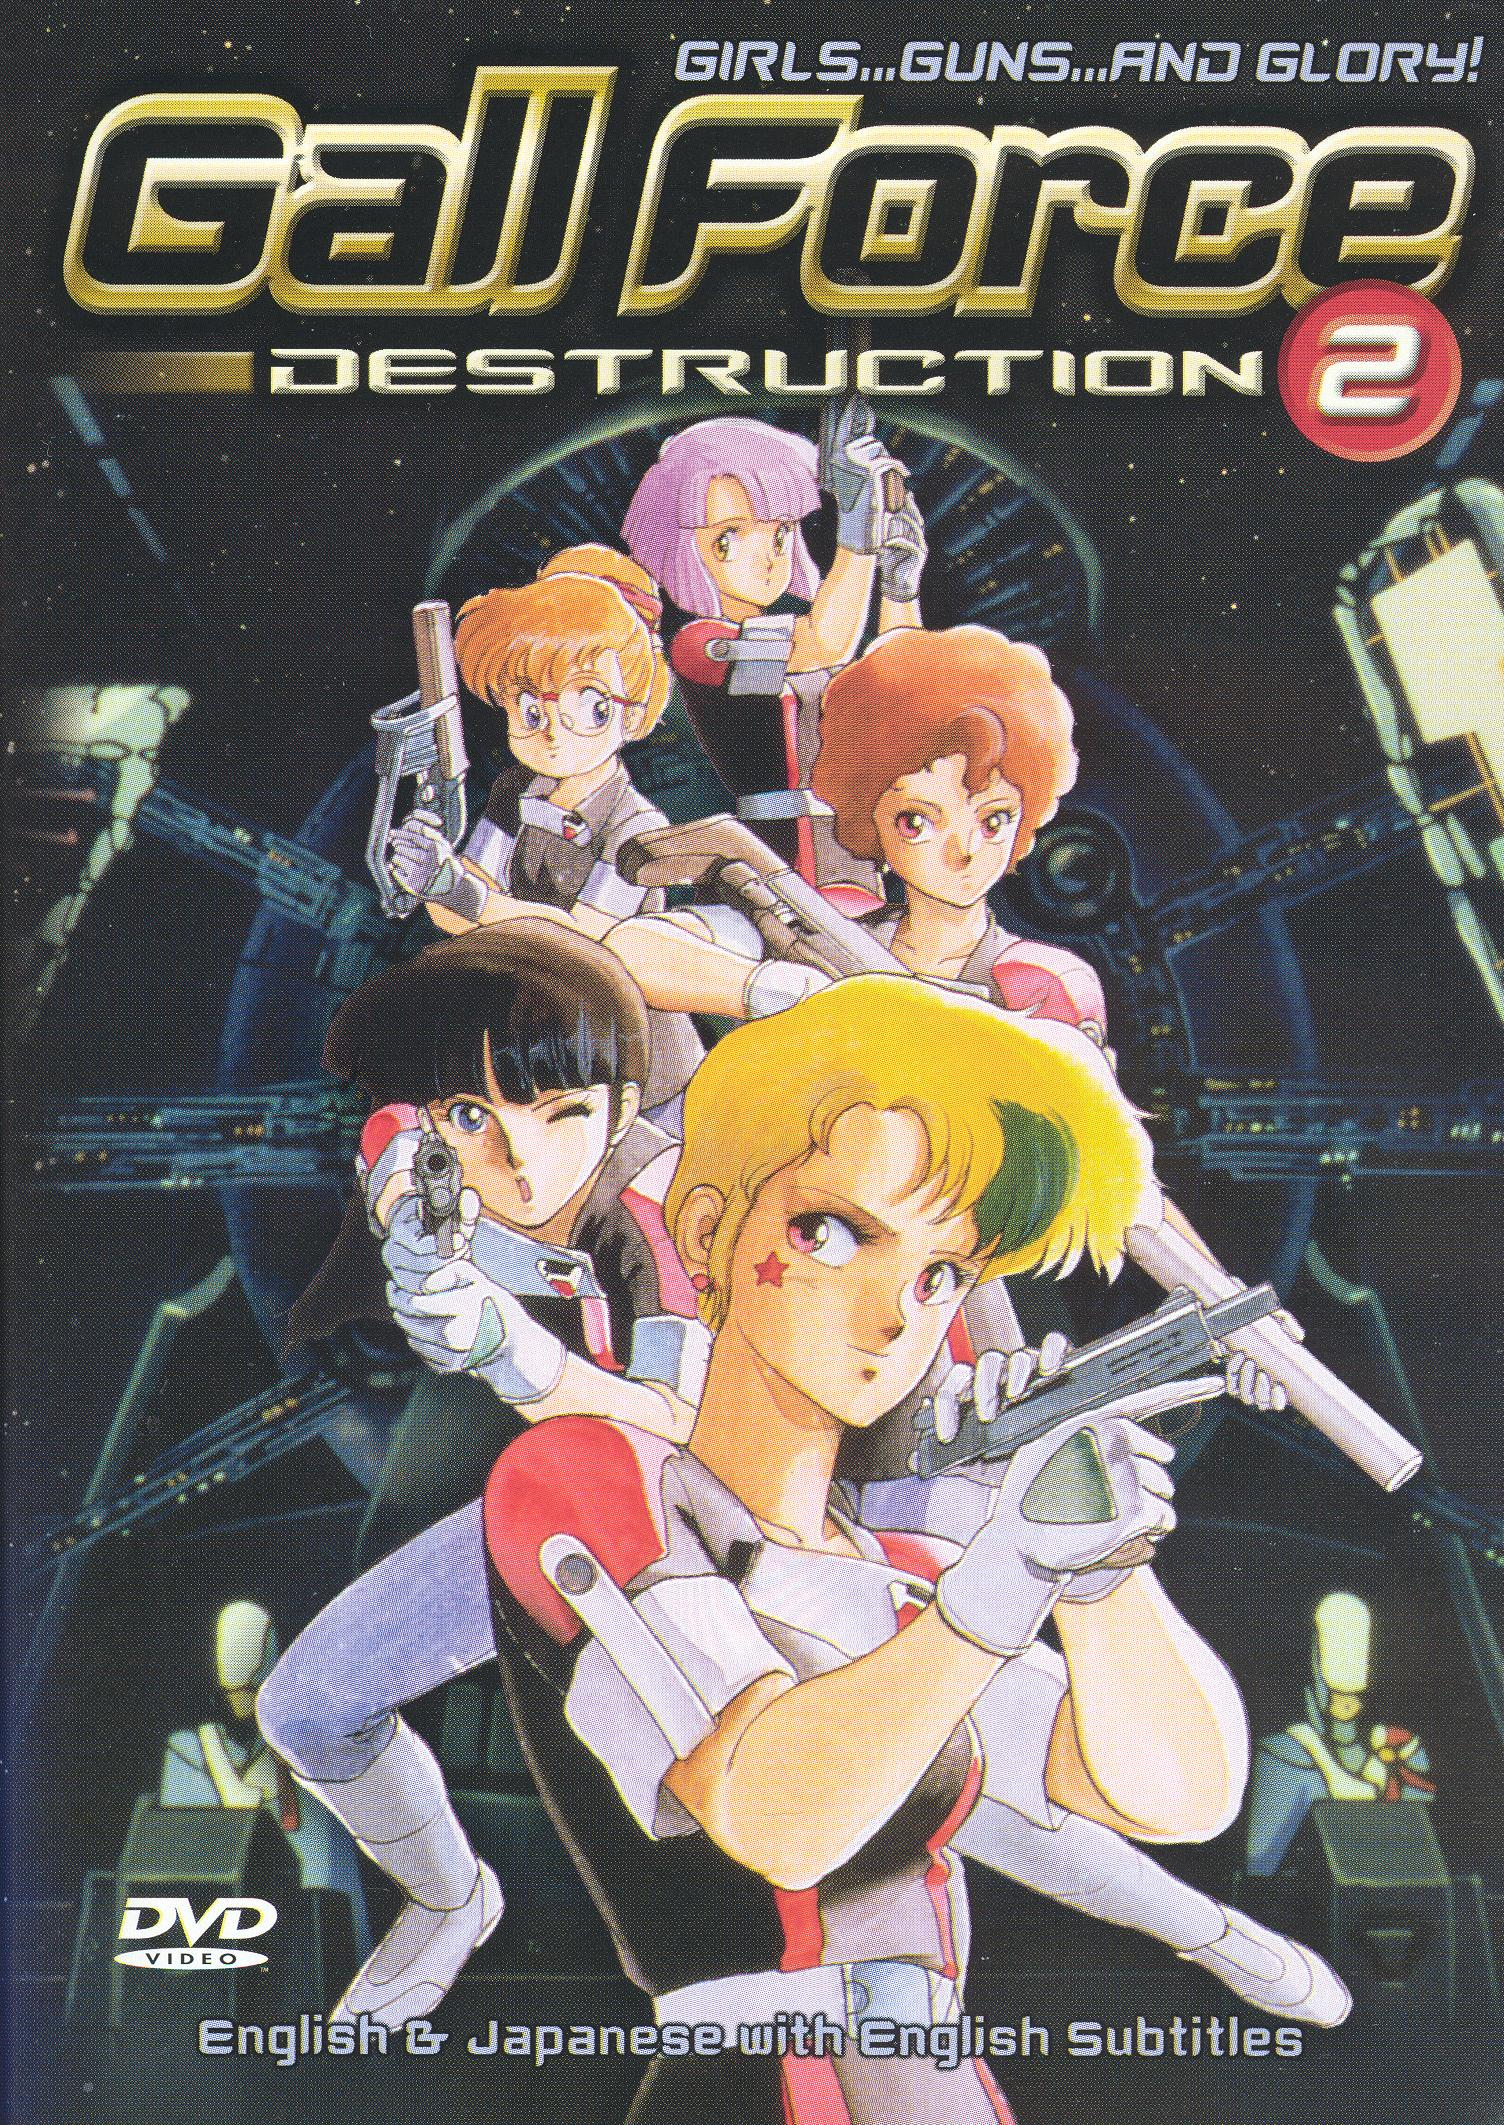 Gall Force 2: Destruction [Anime OVA] (1987)